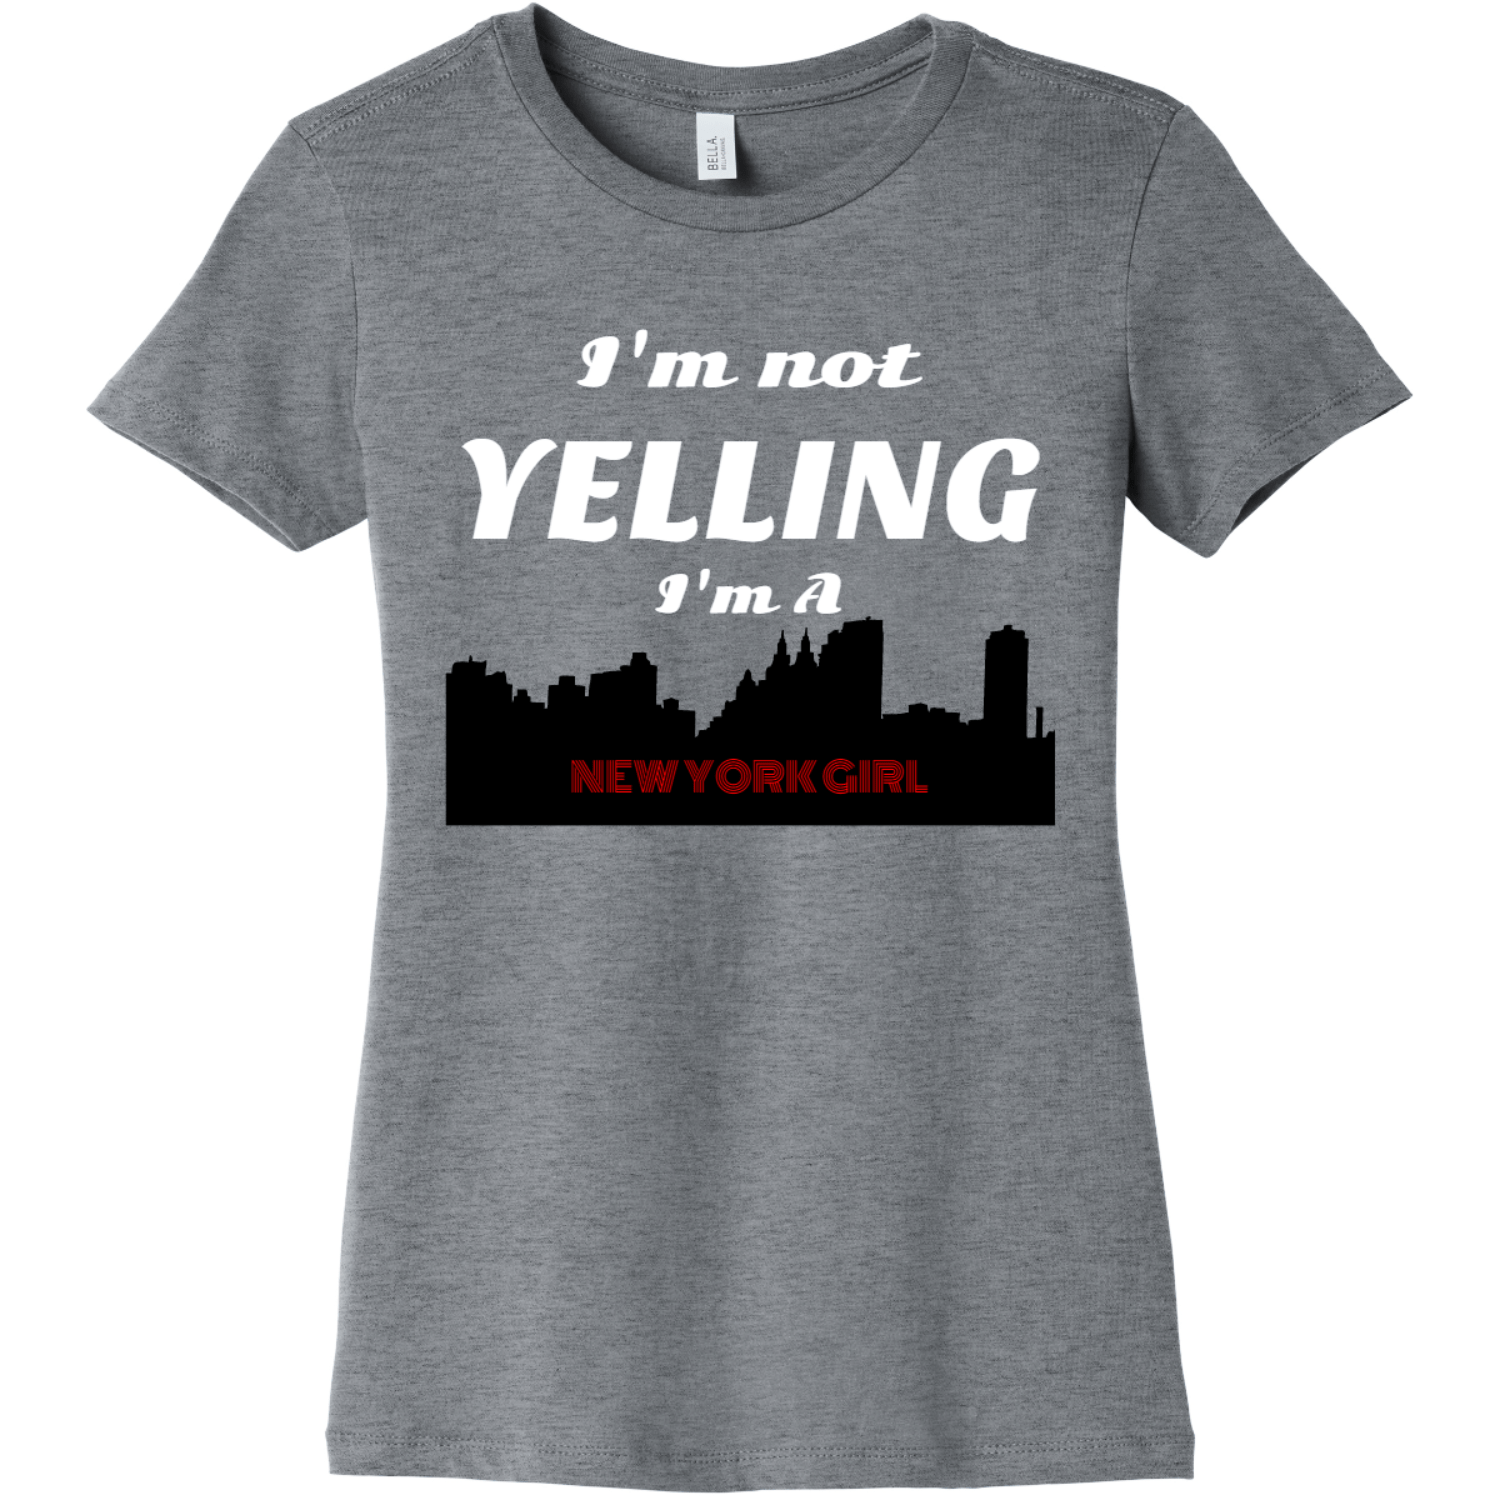 New York Girl I'm not yelling Athletic Heather Bella Canvas 6004 Ladies The Favorite Tee